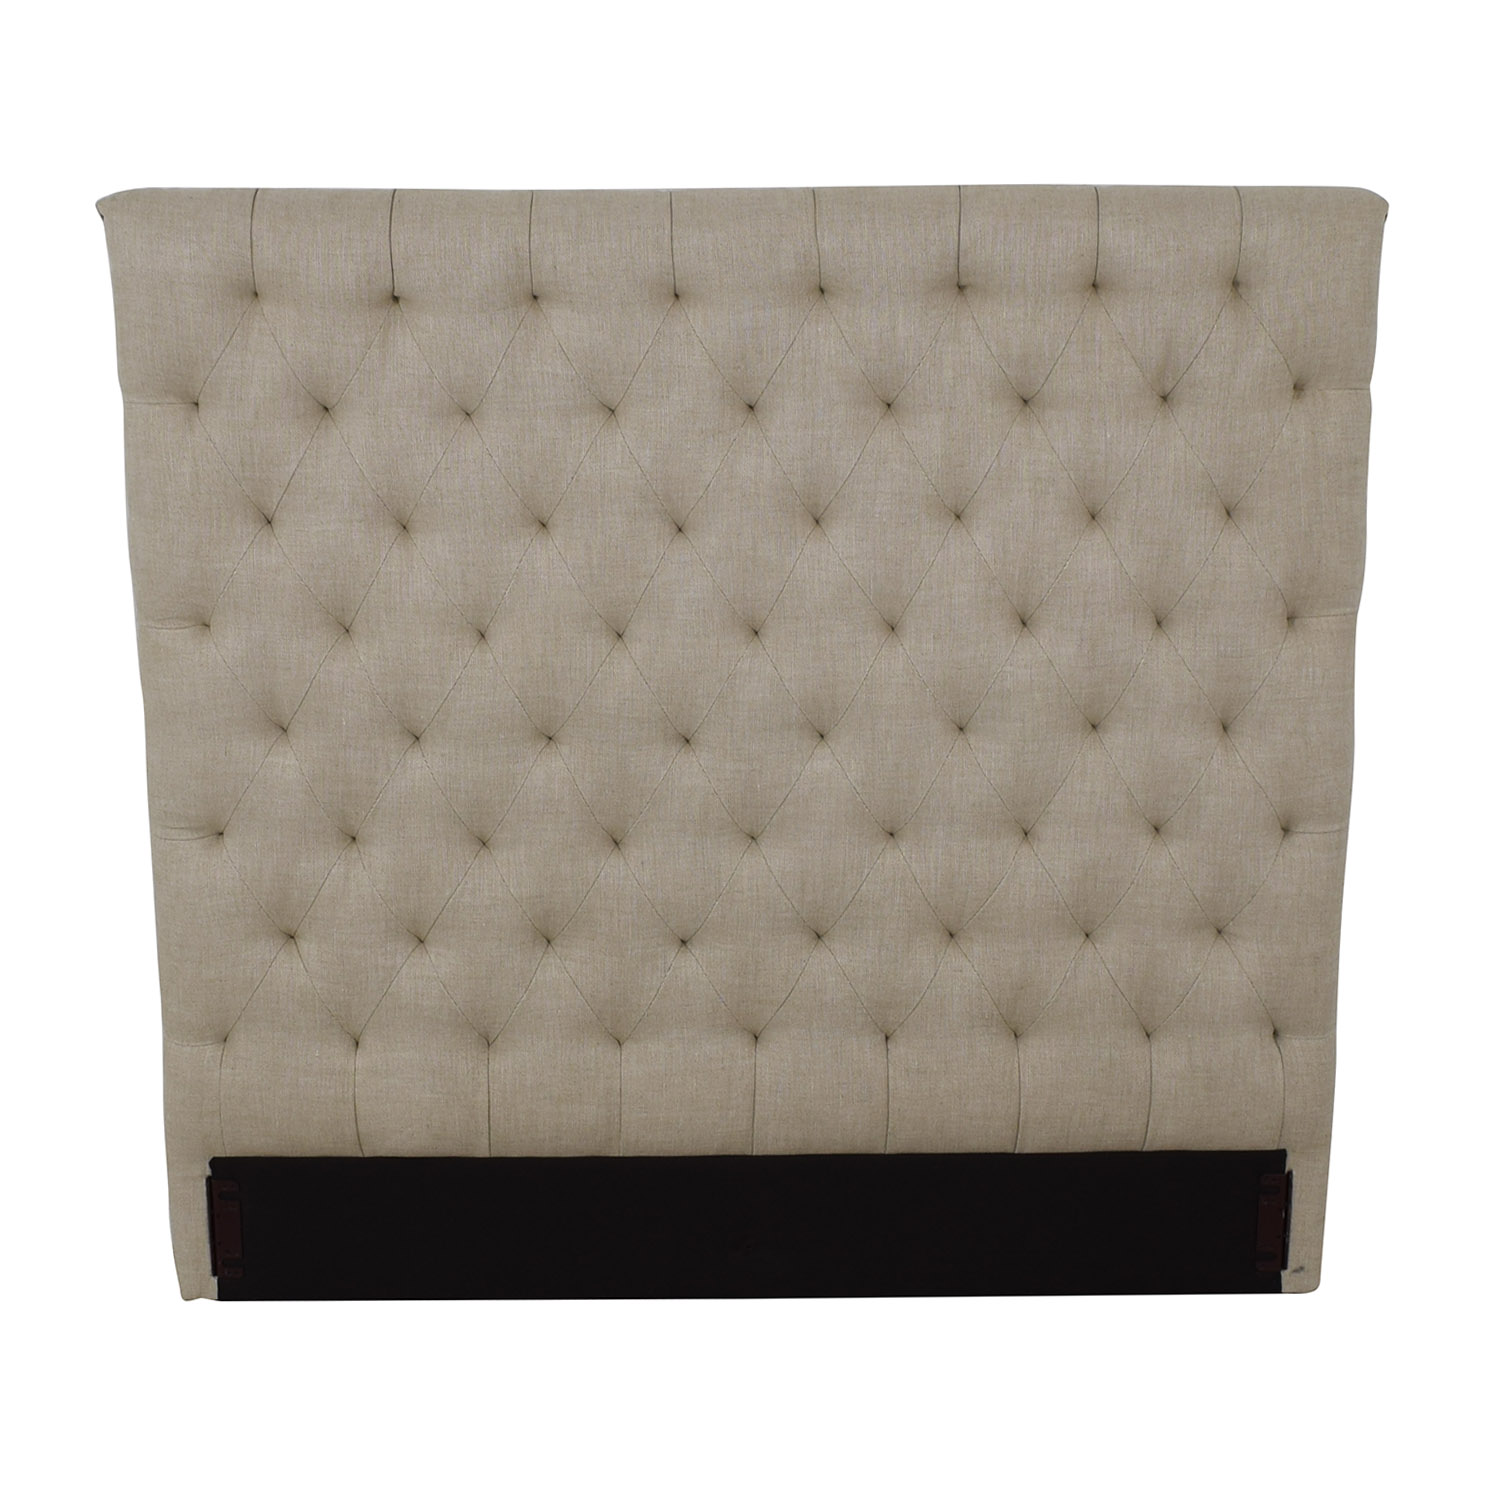 Restoration Hardware Restoration Hardware Chesterfield Fabric Panel Headboard price